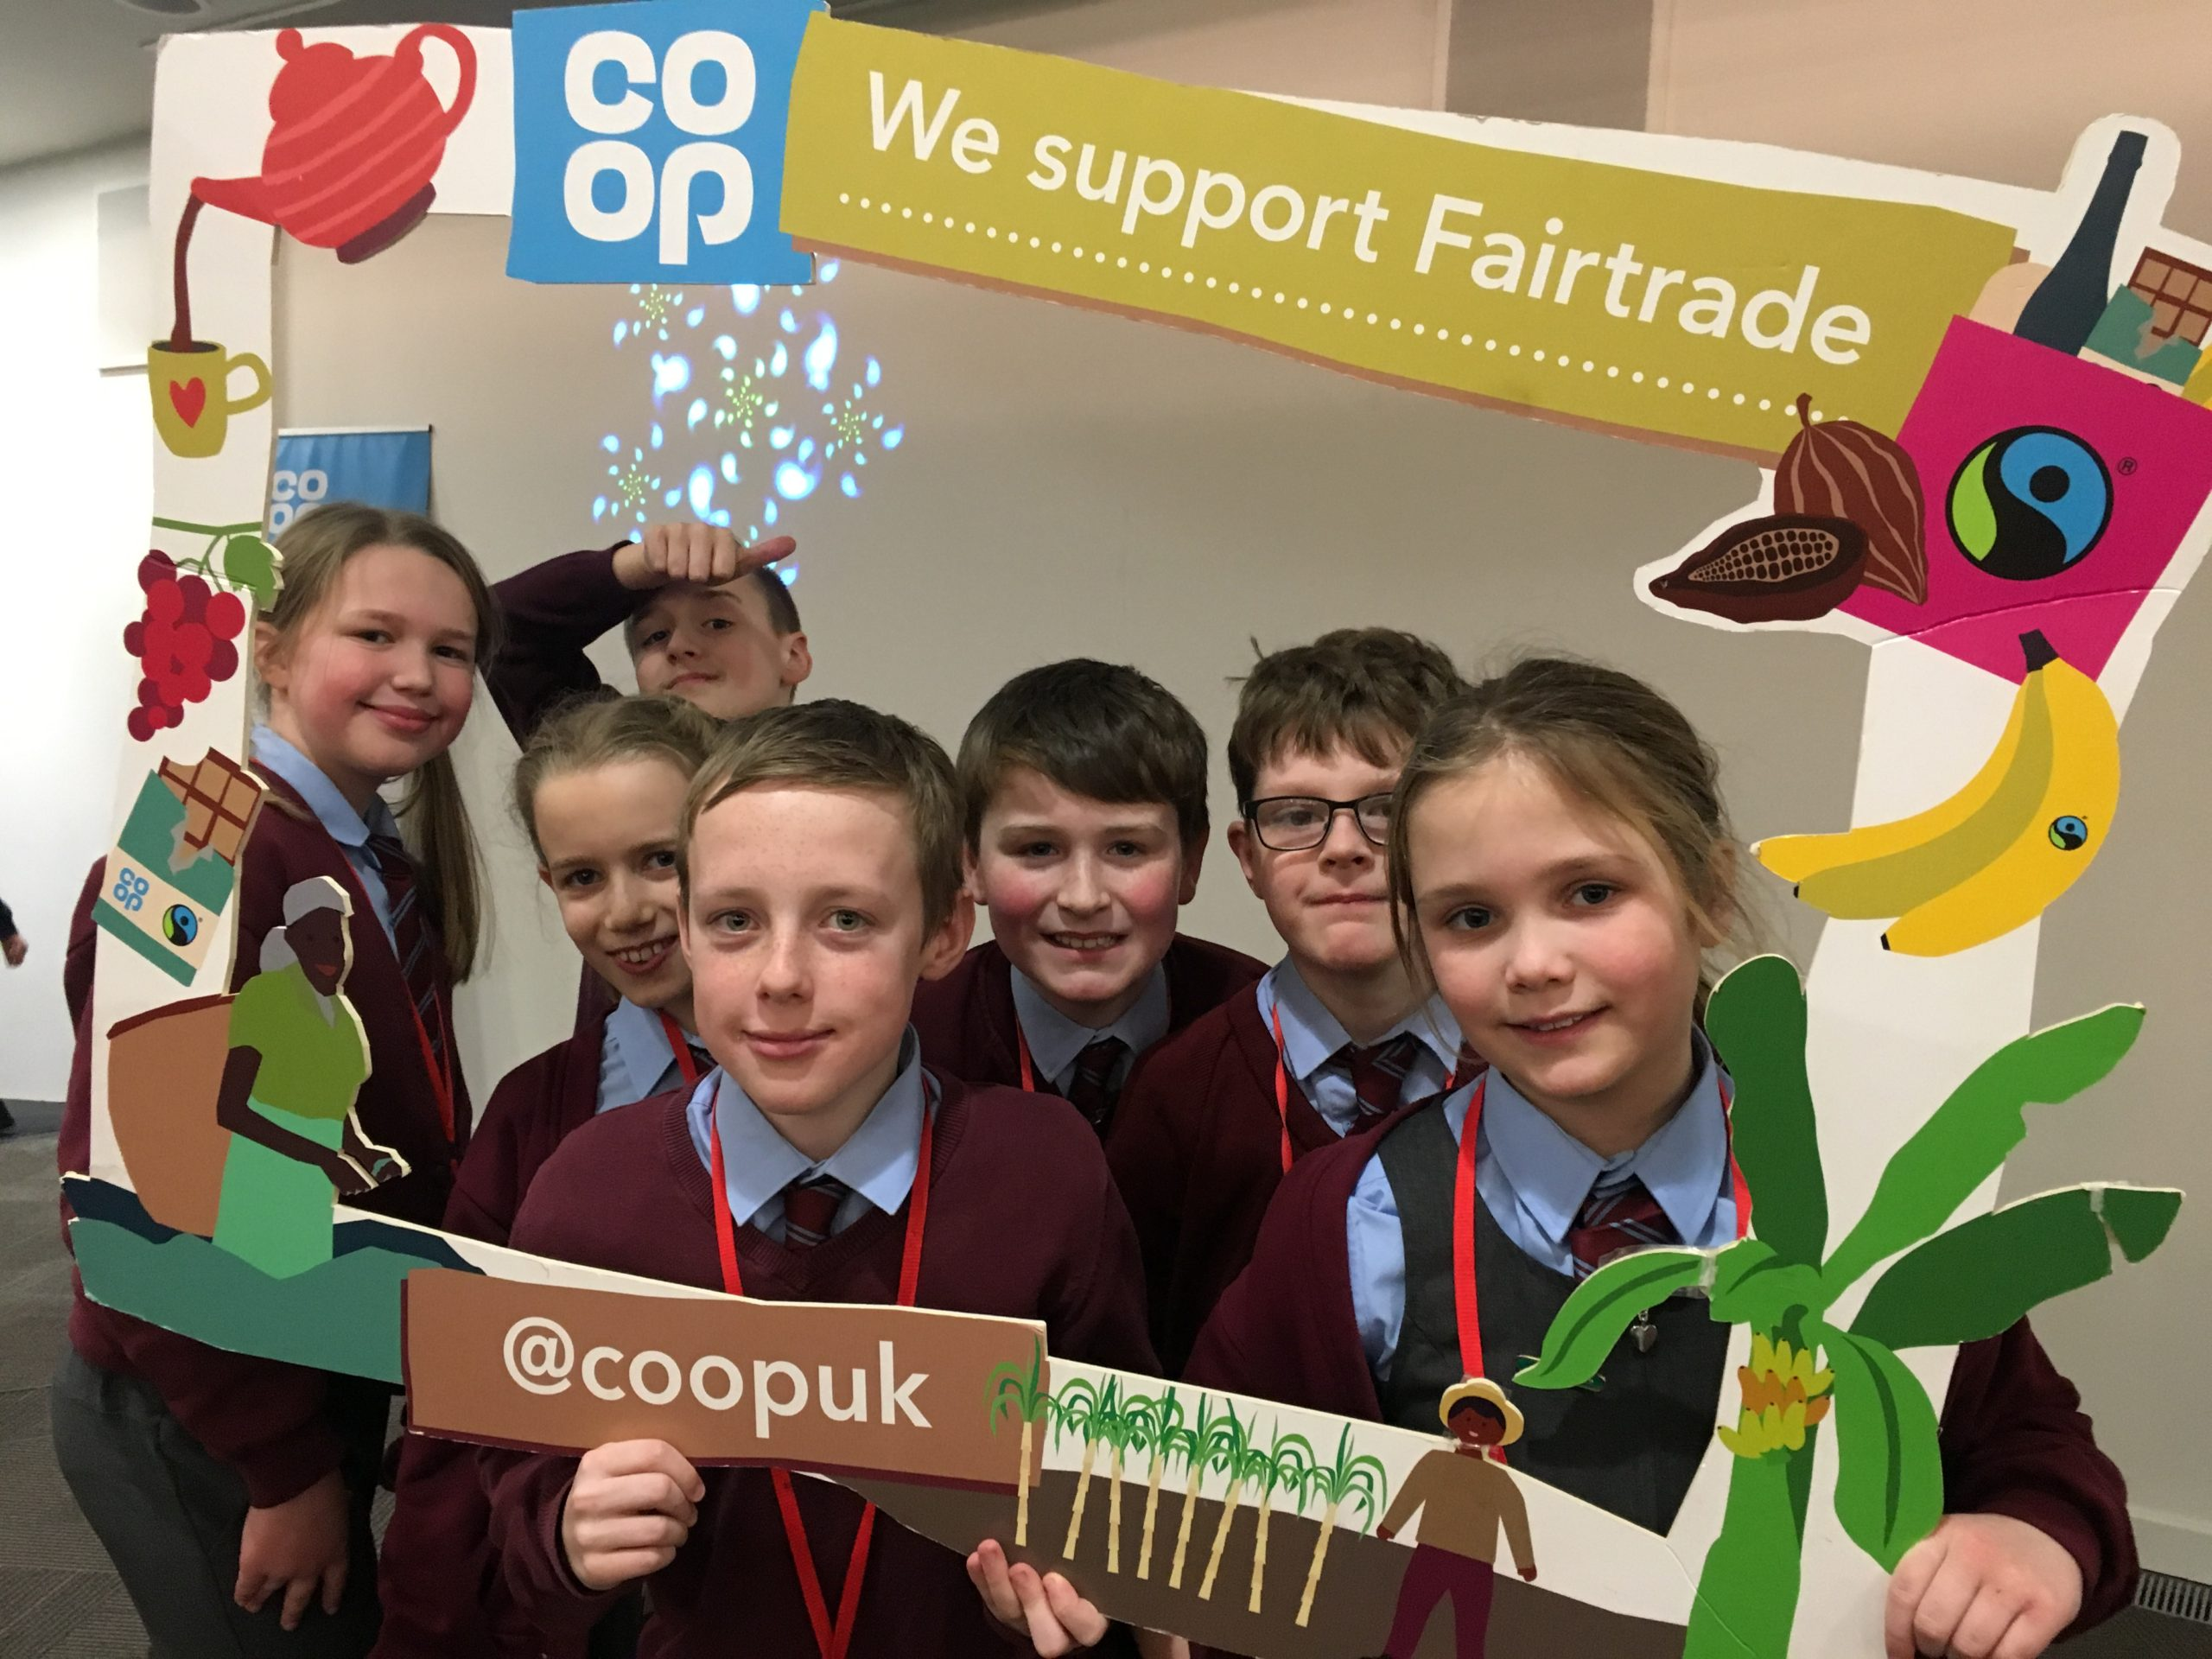 Fairtrade Conference Manchester 2020